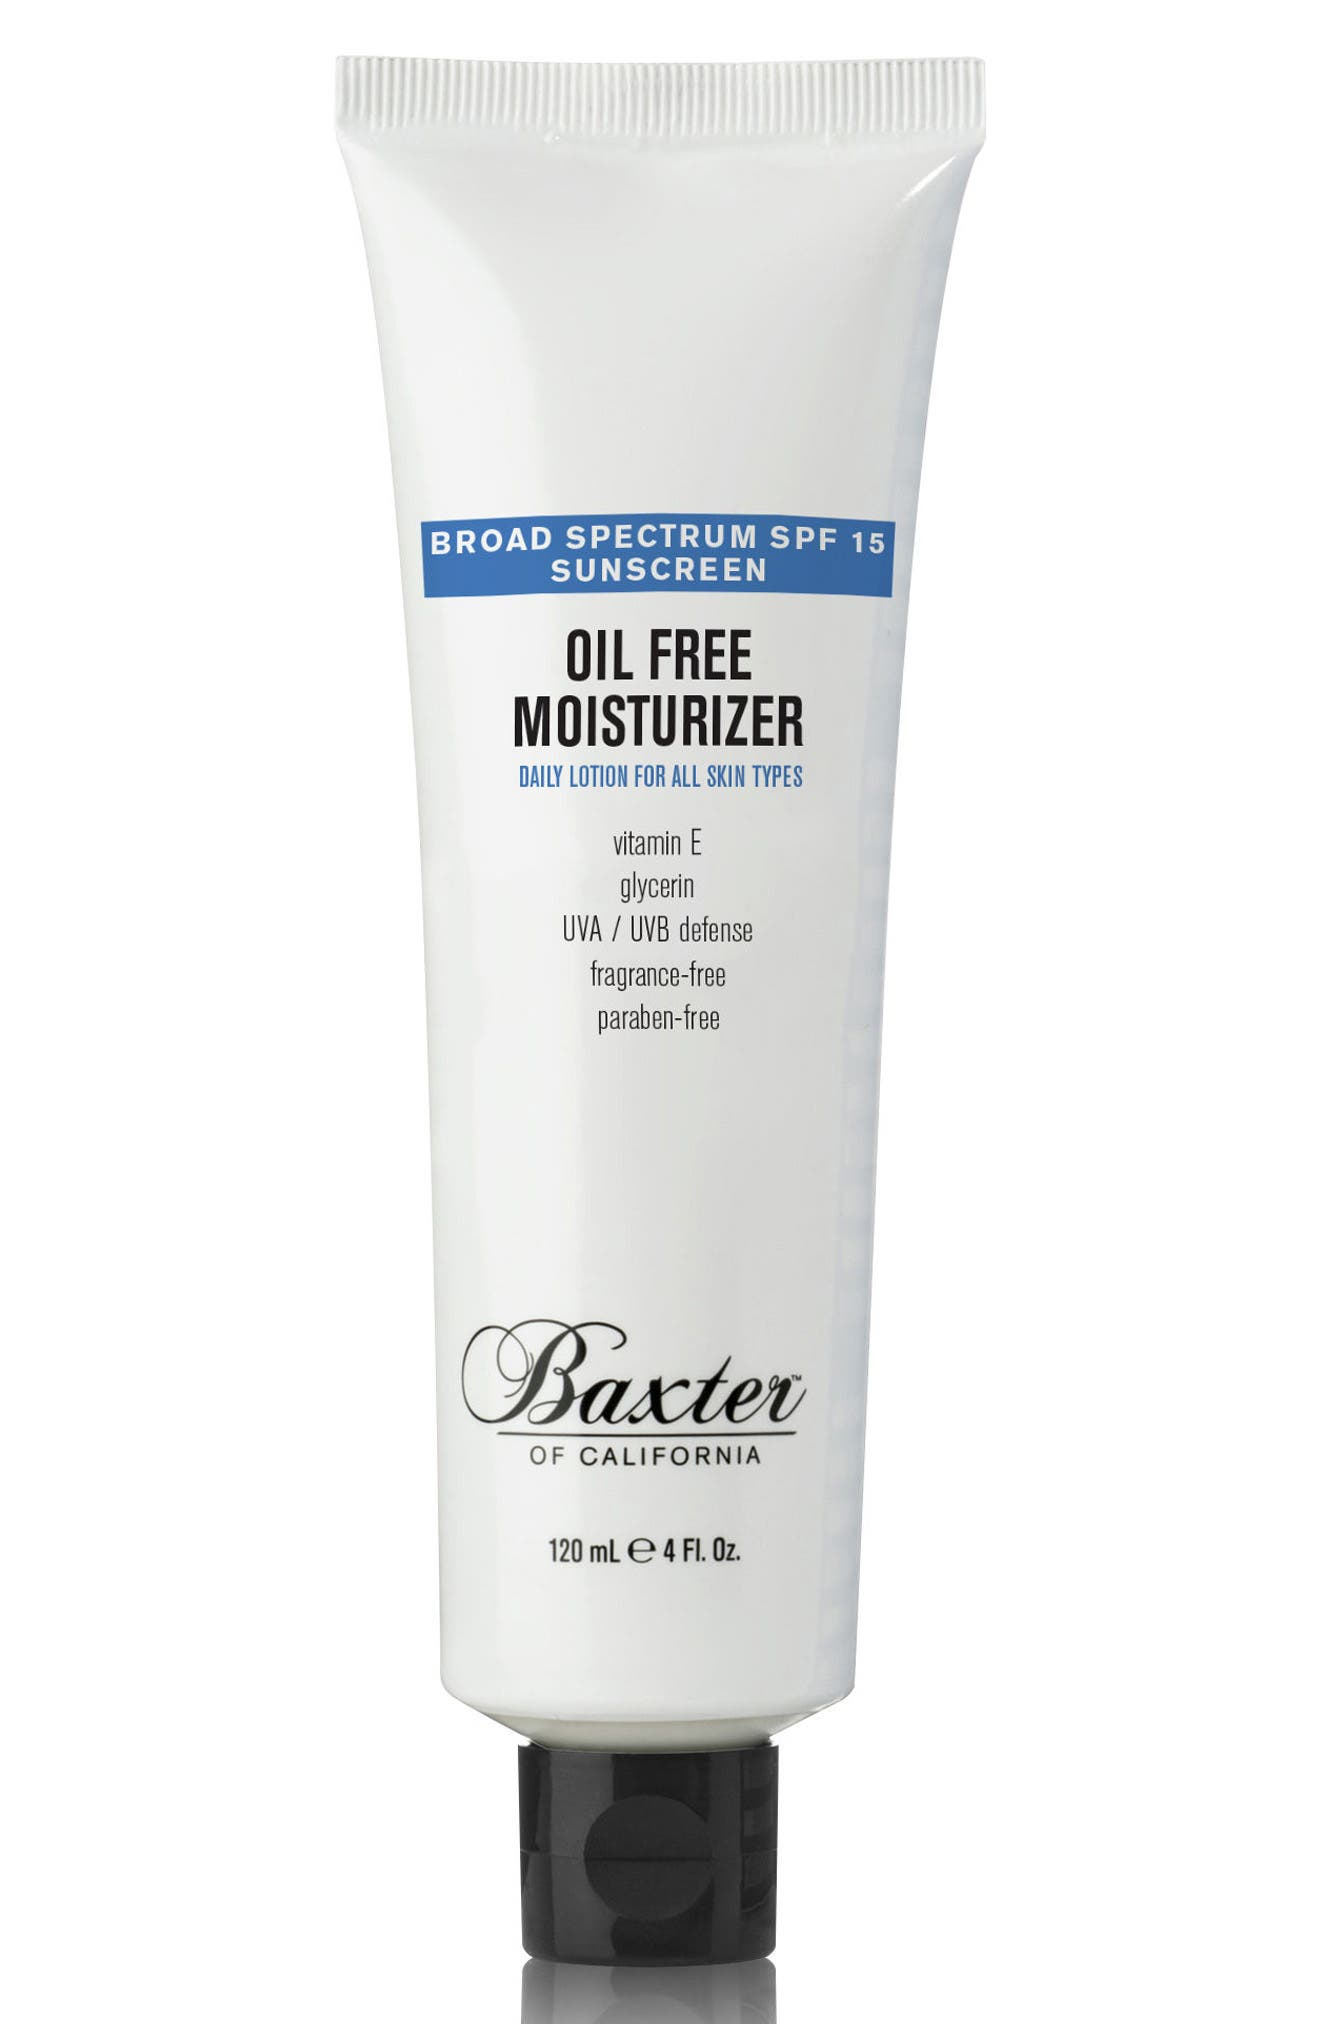 Baxter of California Oil-Free Moisturizer